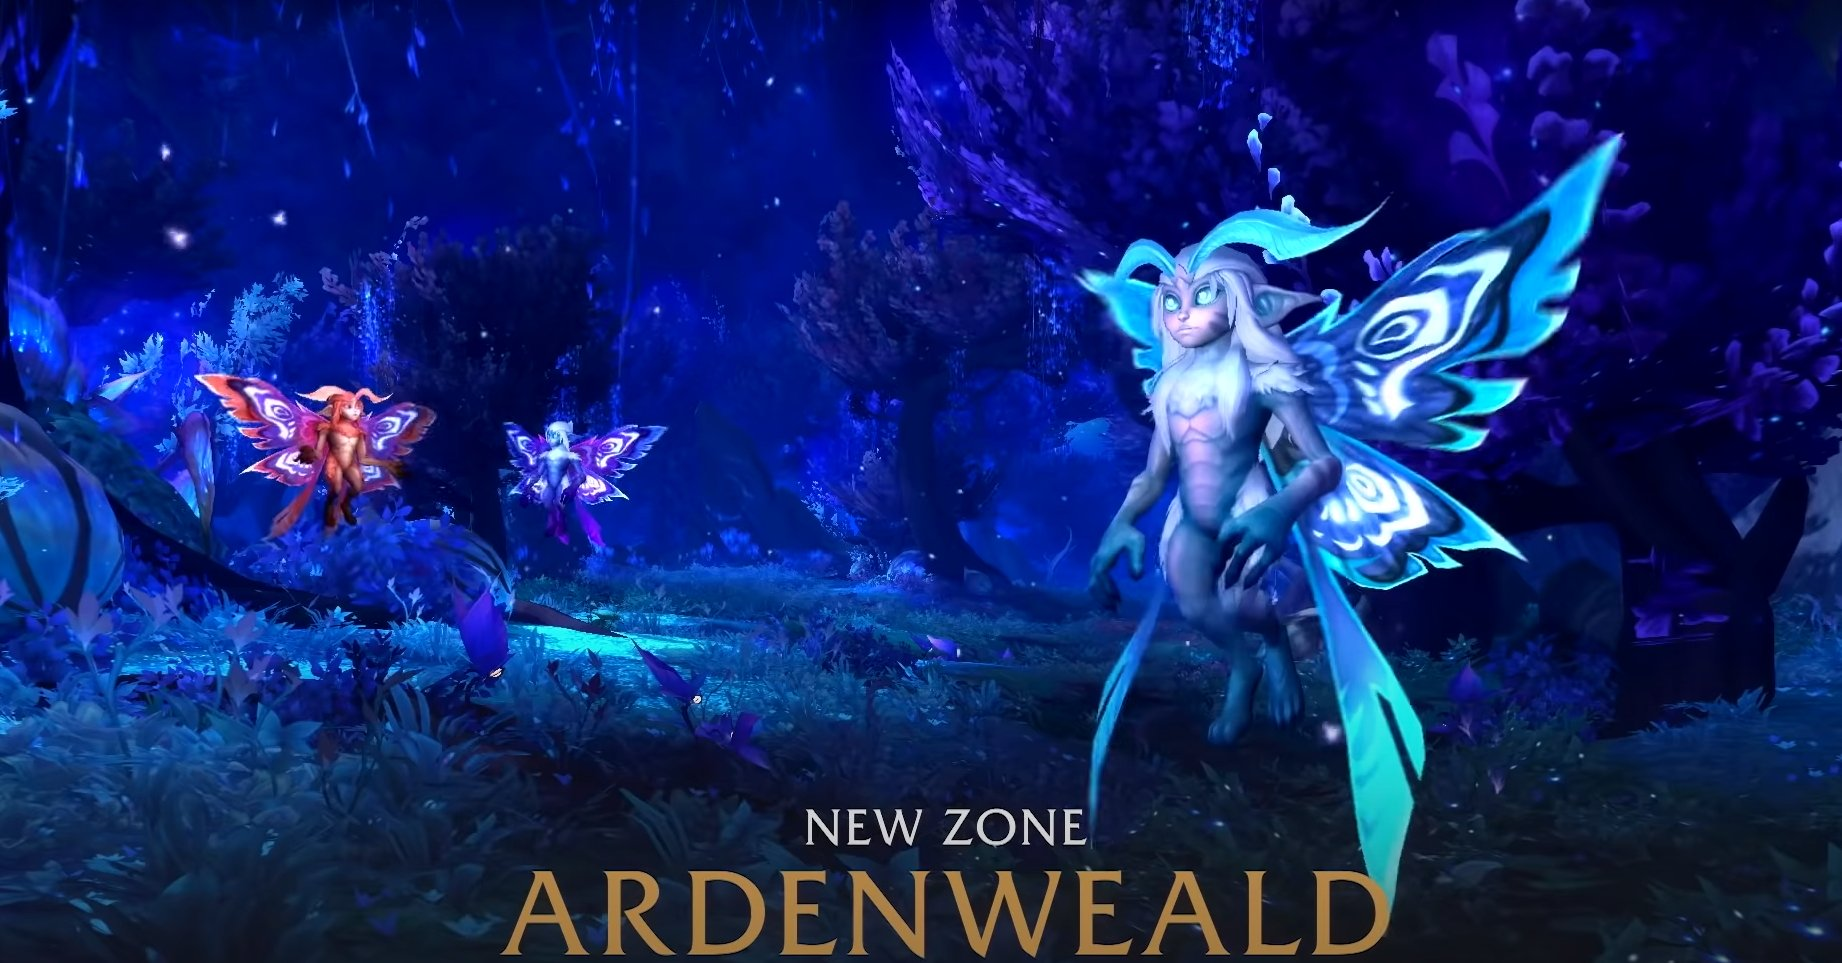 World Of Warcraft: Shadowlands Game Director Ion Hazzikostas Details Feedback, Thoughts, And Changes On Upcoming Covenant System